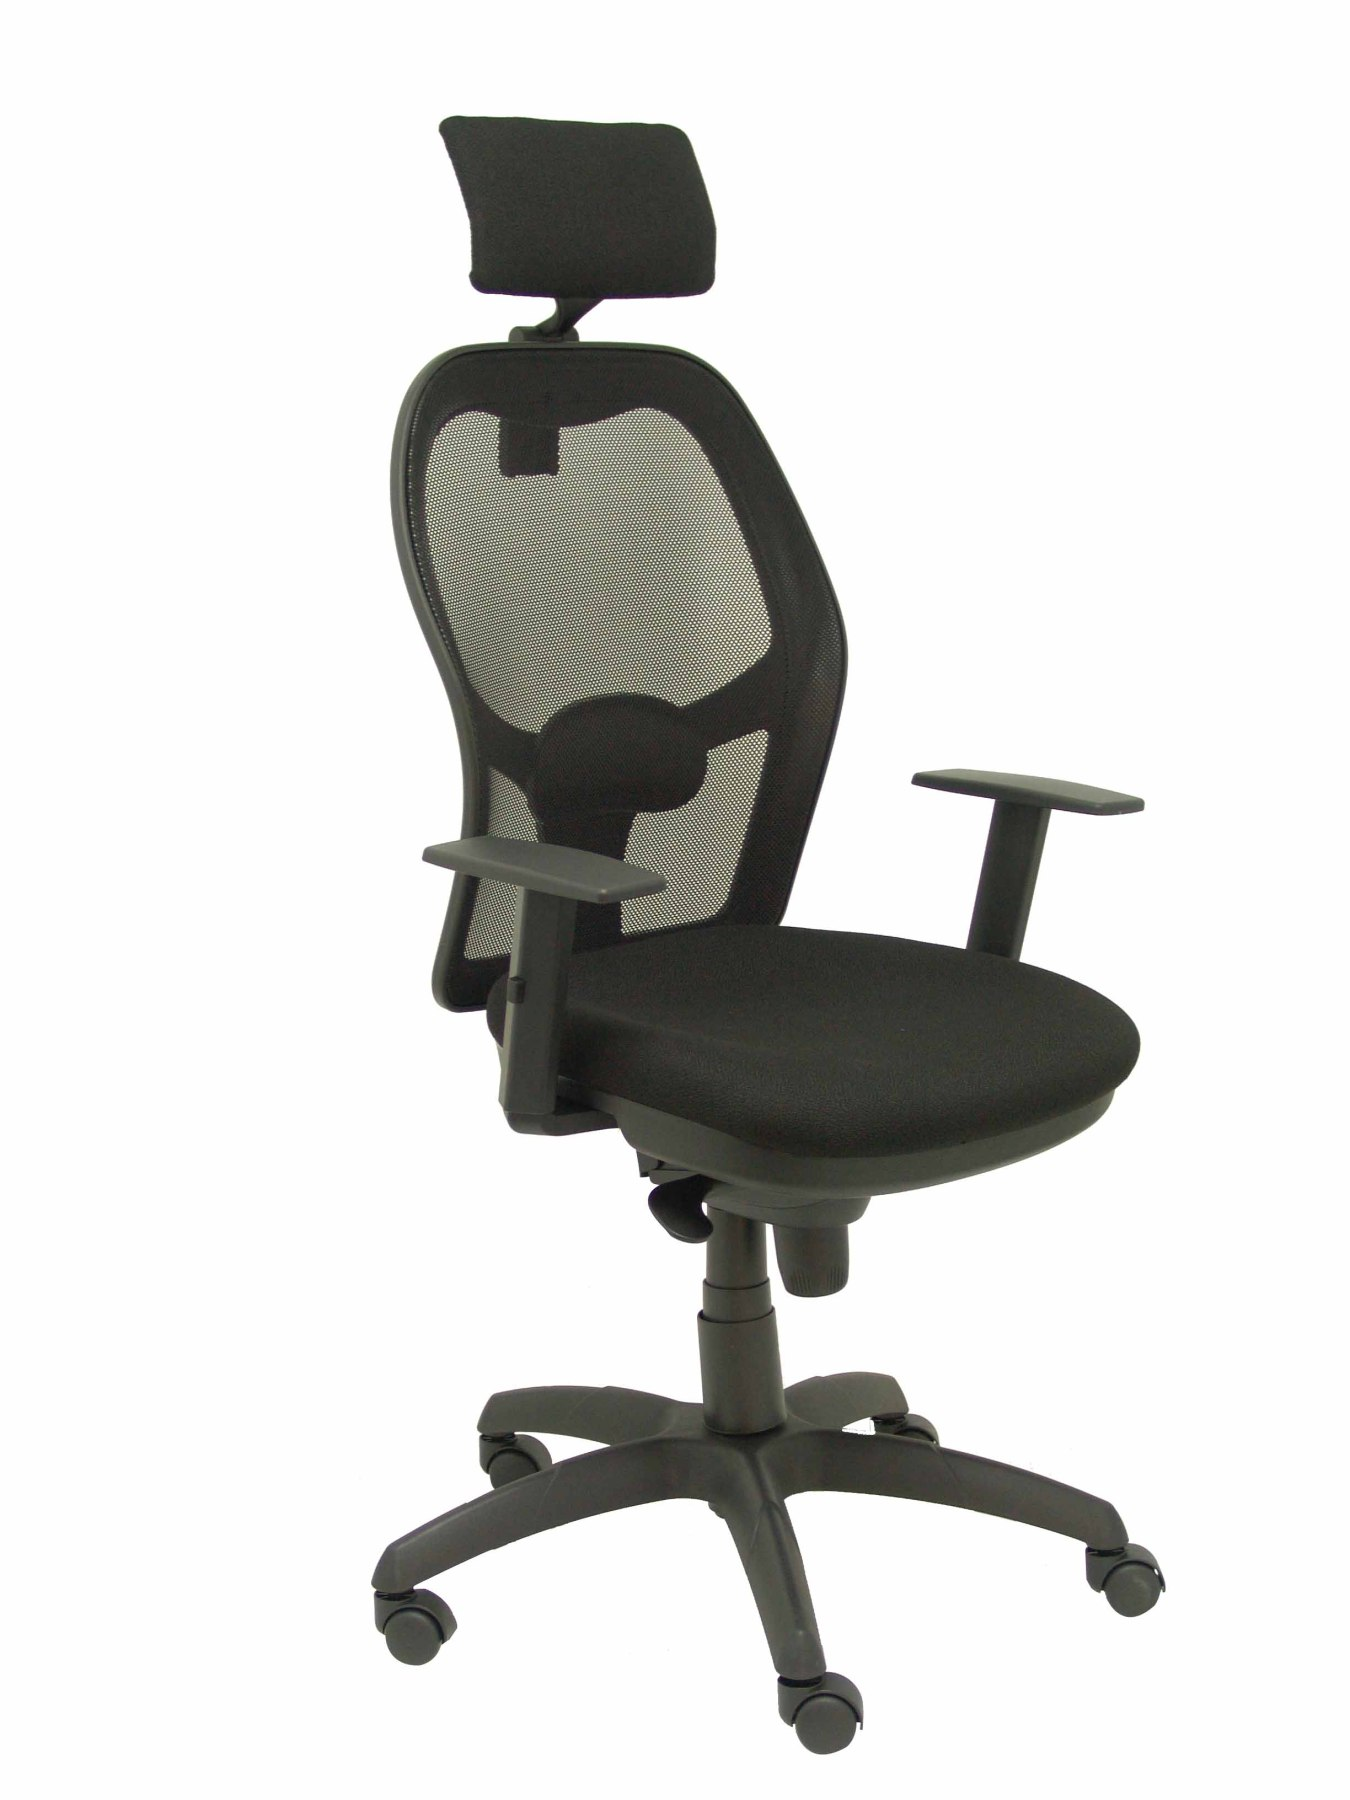 Ergonomic Office Chair With Mechanism Synchro, Arms Dimmable And Adjustable Height-Backing Mesh Sweats